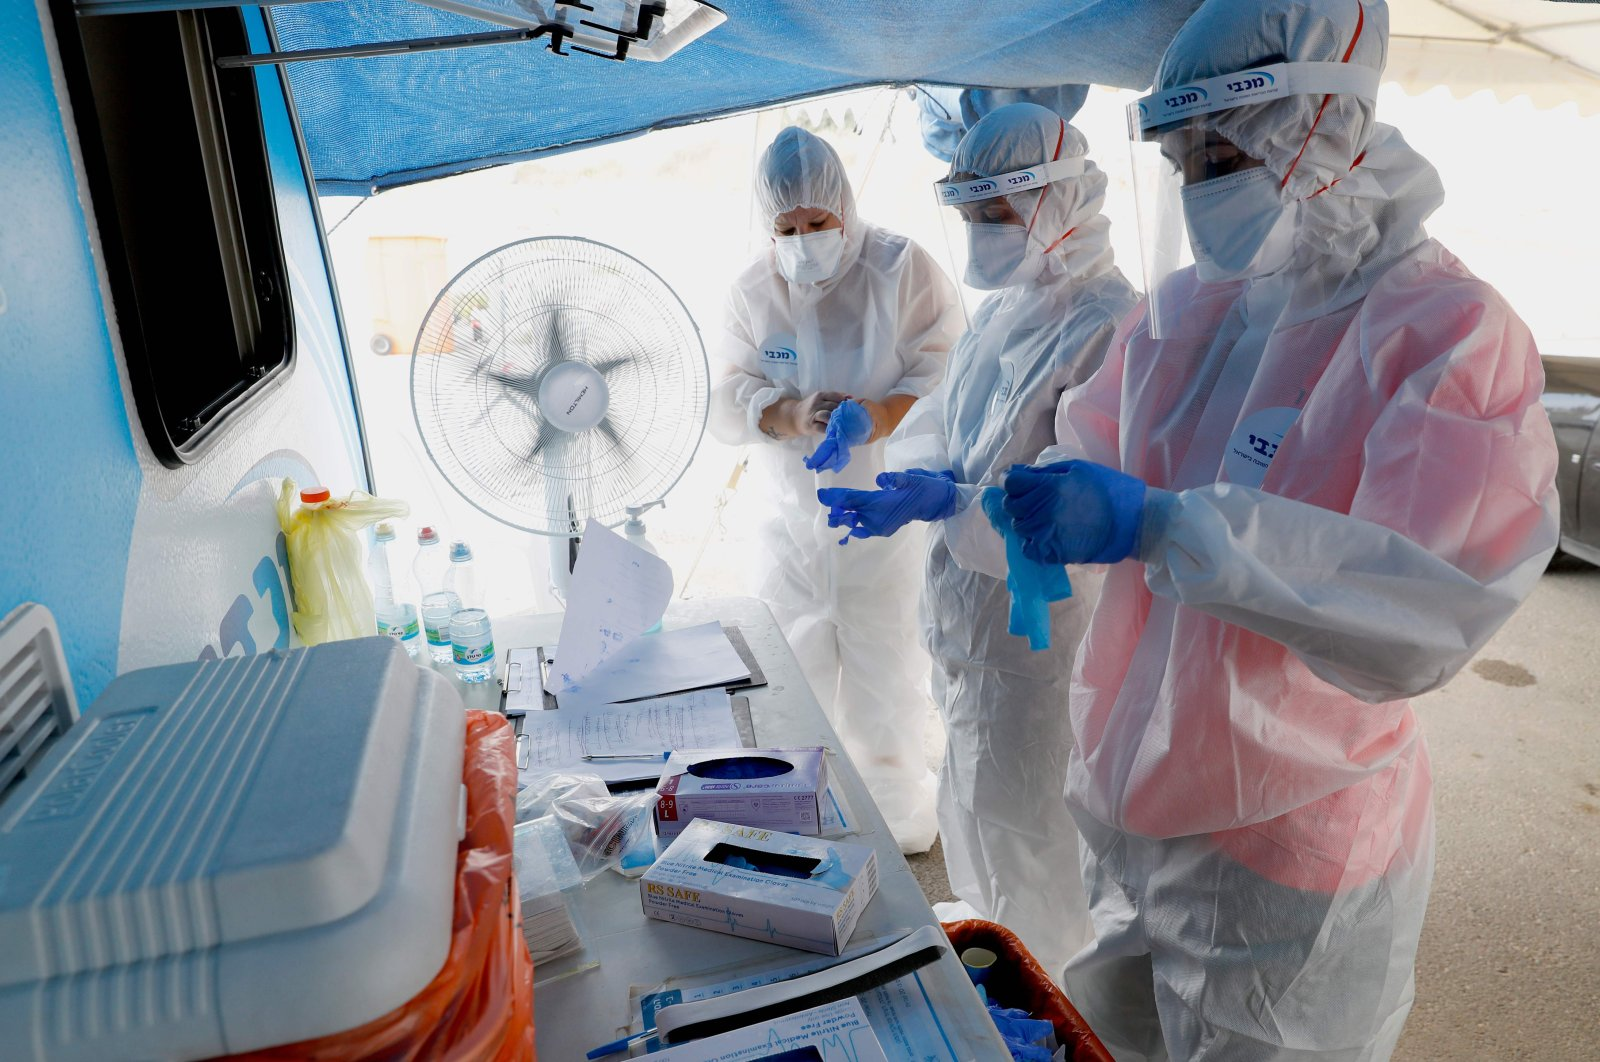 Israeli medical personnel take samples at a drive-thru COVID-19 testing facility in Ramat Hasharon in the suburbs of Tel Aviv, July 6, 2020. (AFP Photo)